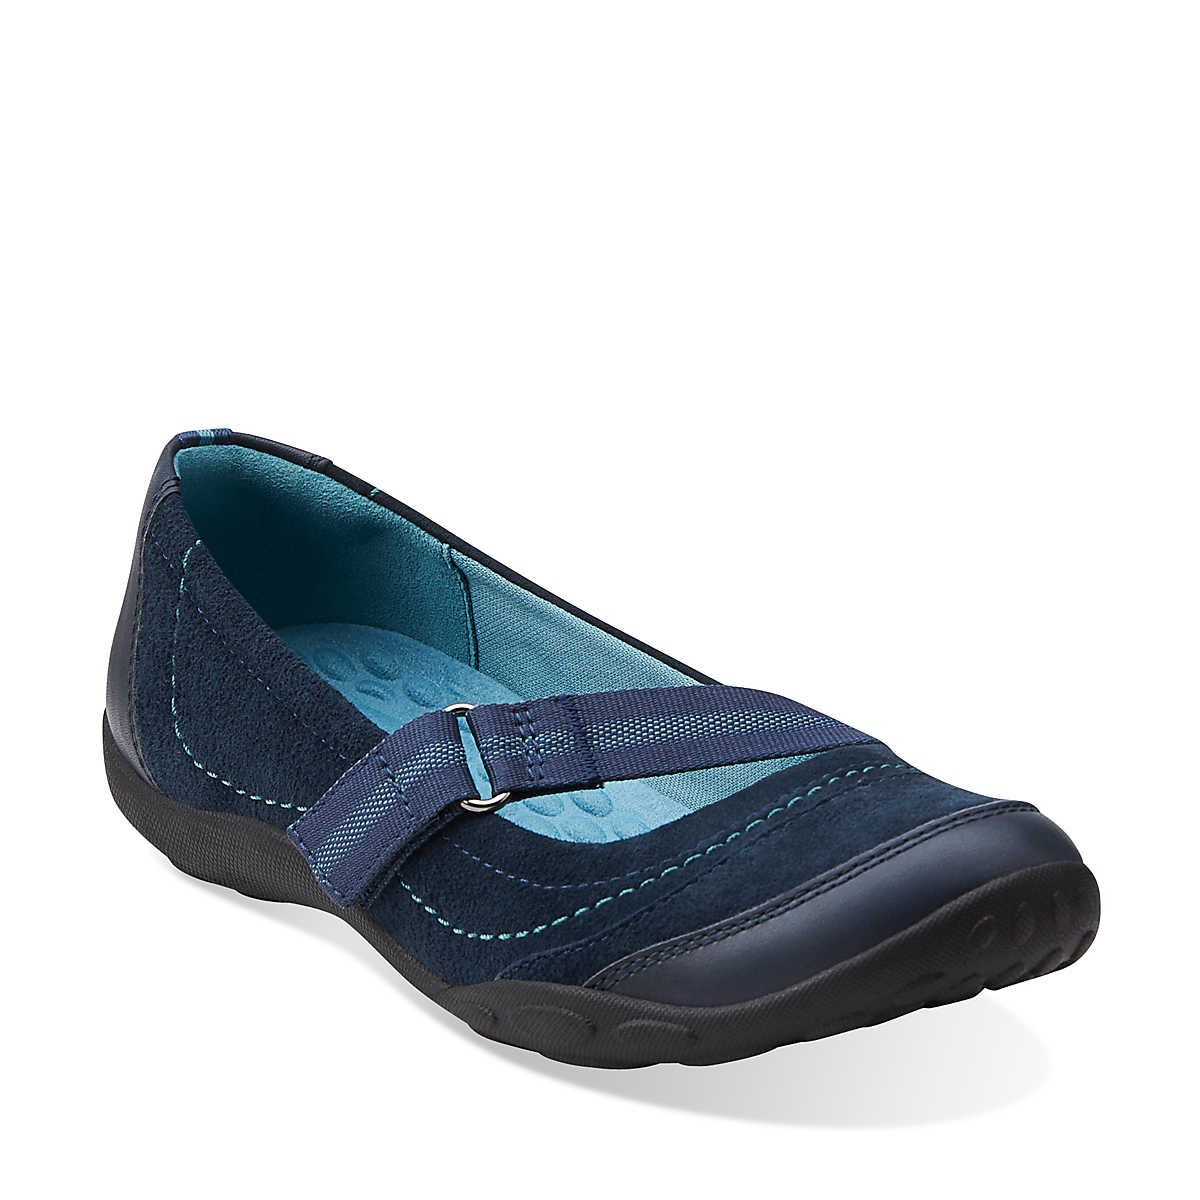 Haley Braeburn in Navy - Womens Shoes from Clarks